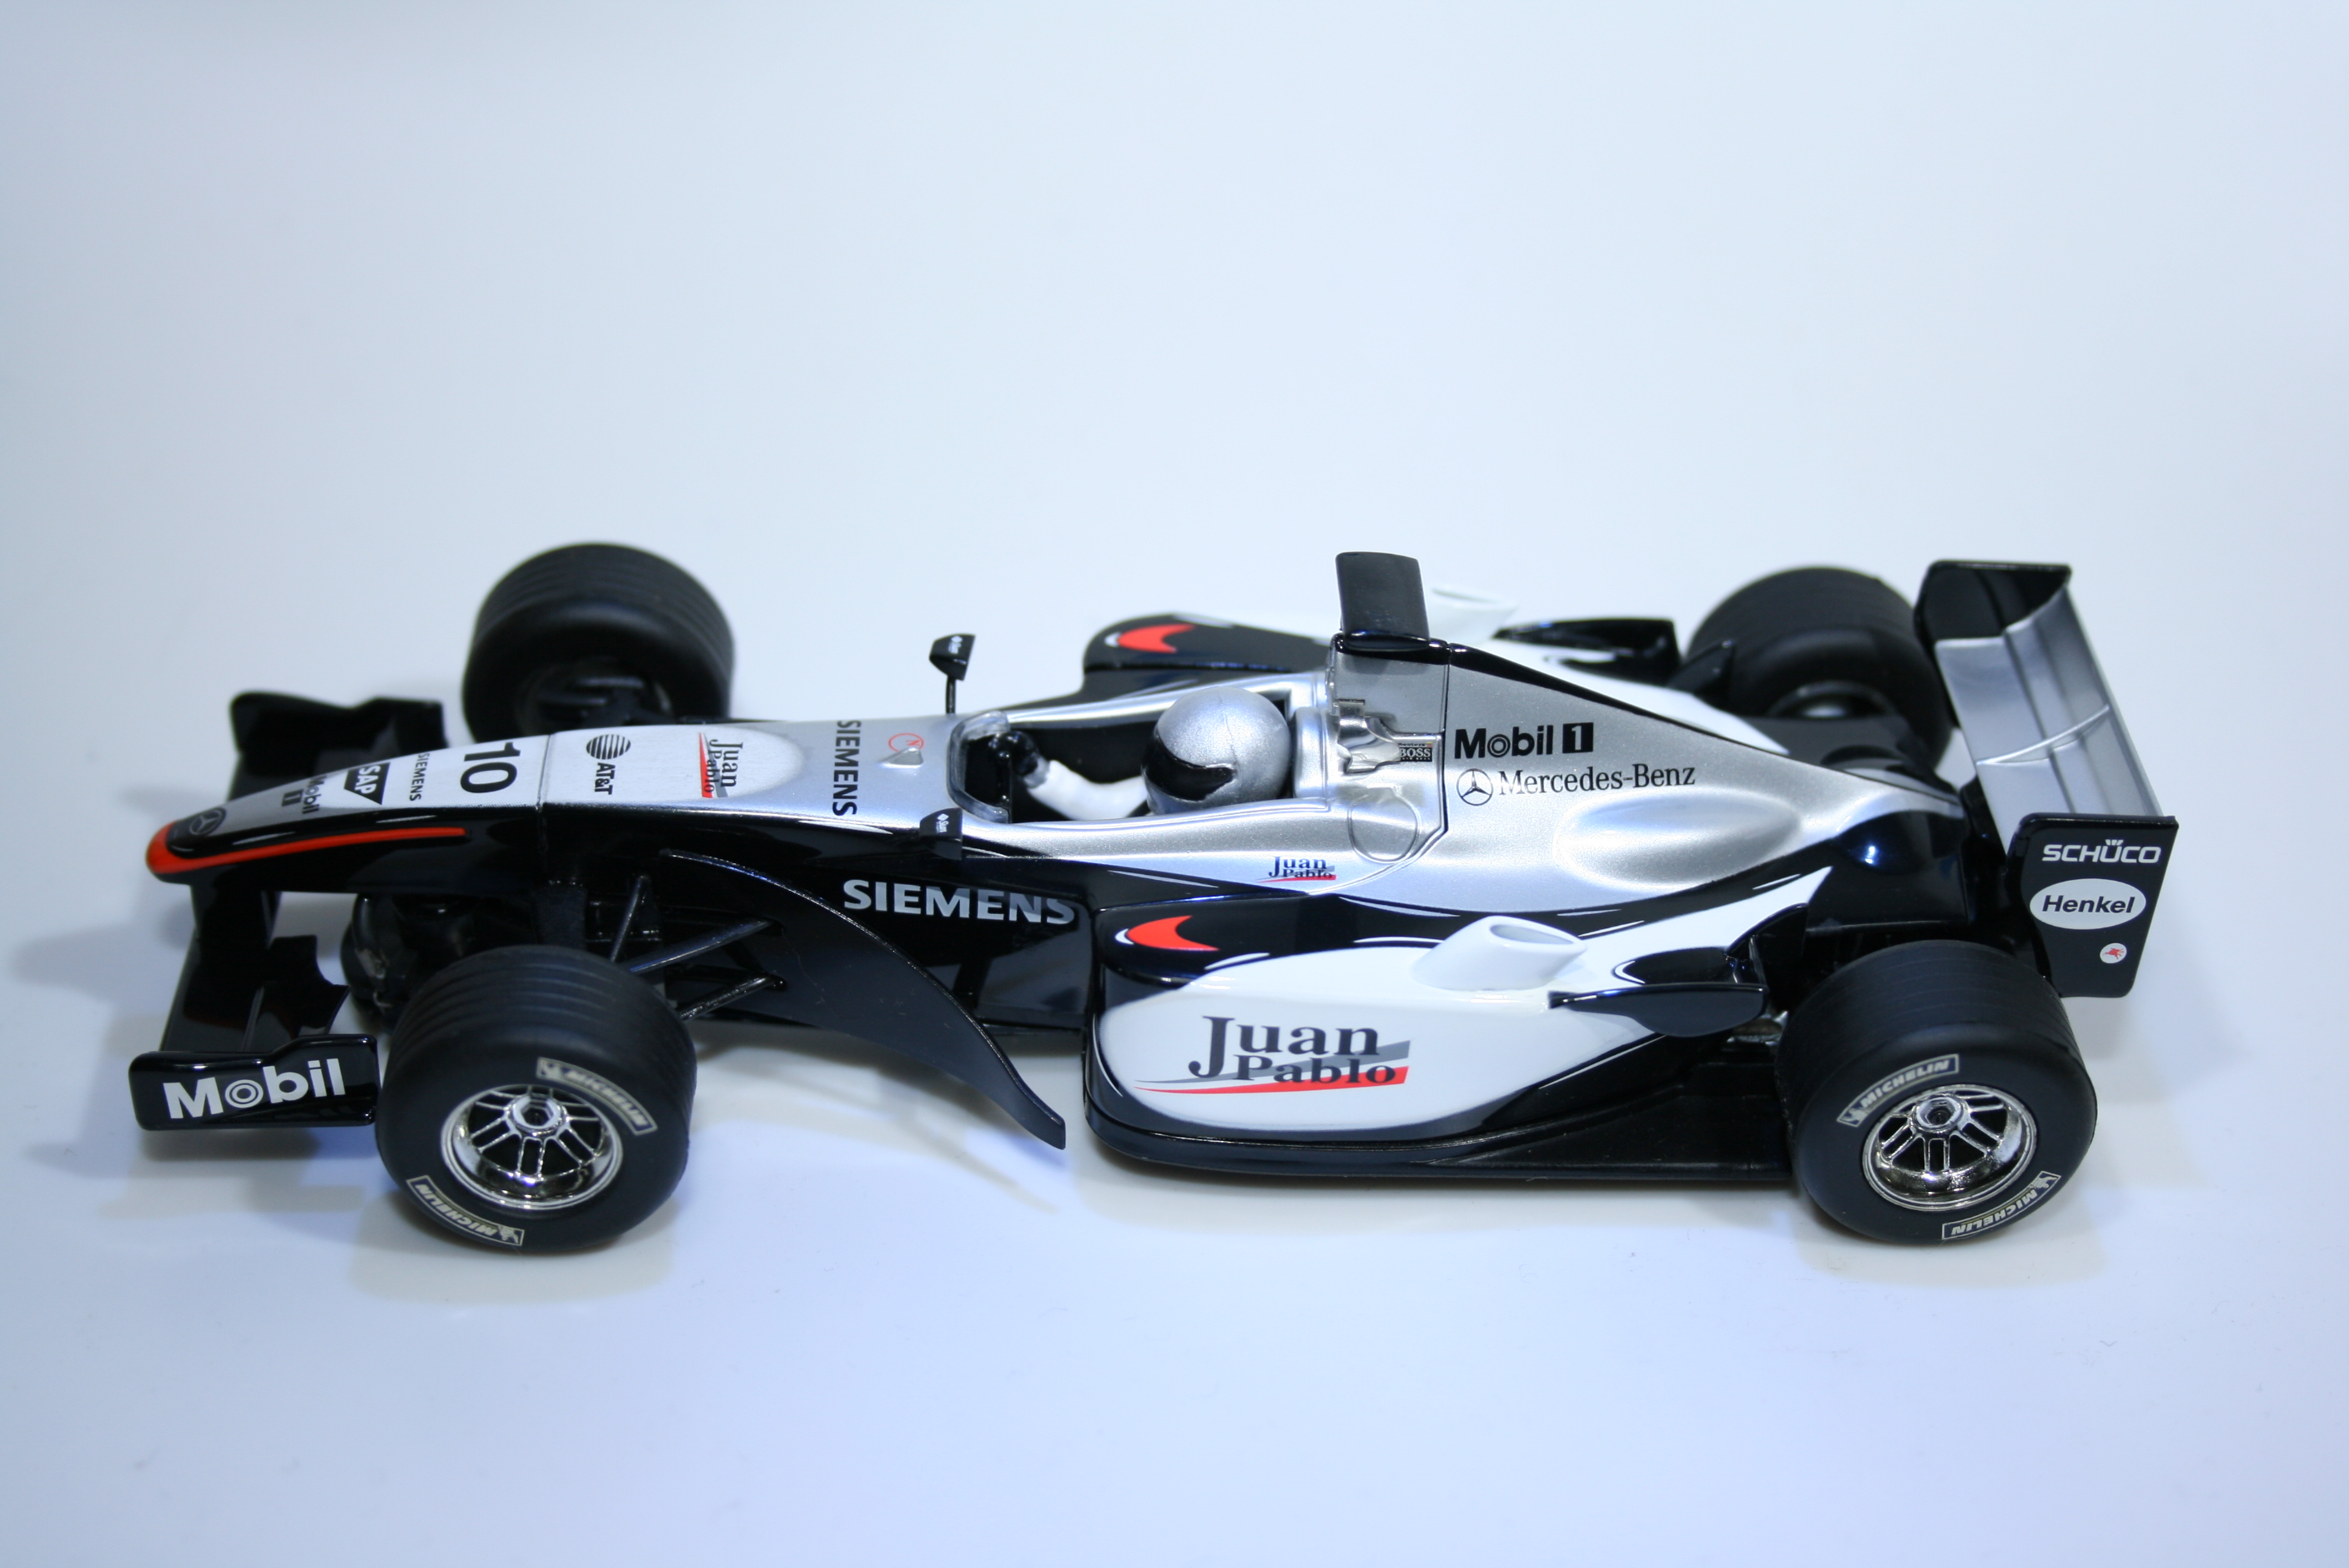 55 Mclaren MP4/20 2005 J P Montoya Scalextric C2667 2005 Boxed